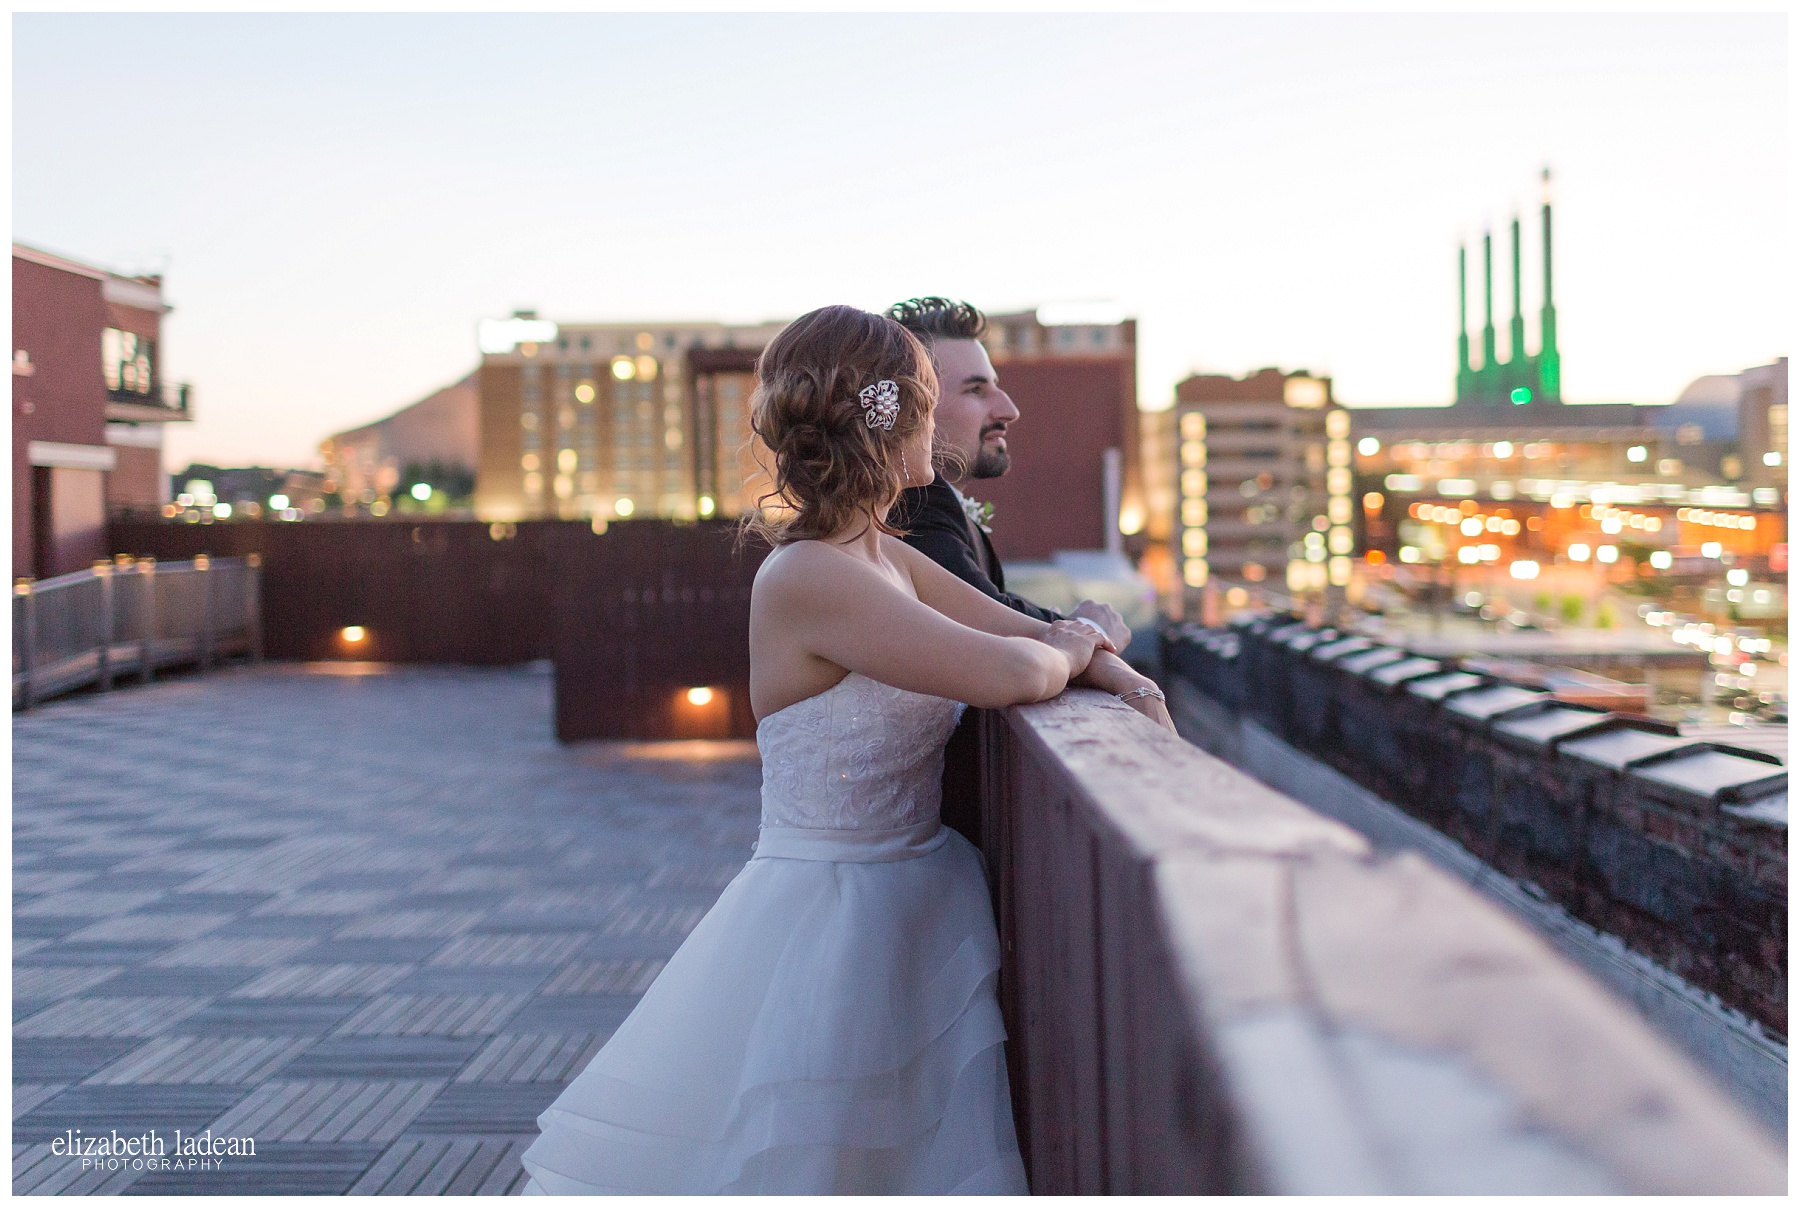 Terrace-on-Grand-Kansas-City-Wedding-Photography-C+J-0506-Elizabeth-Ladean-Photography-photo_0666.jpg